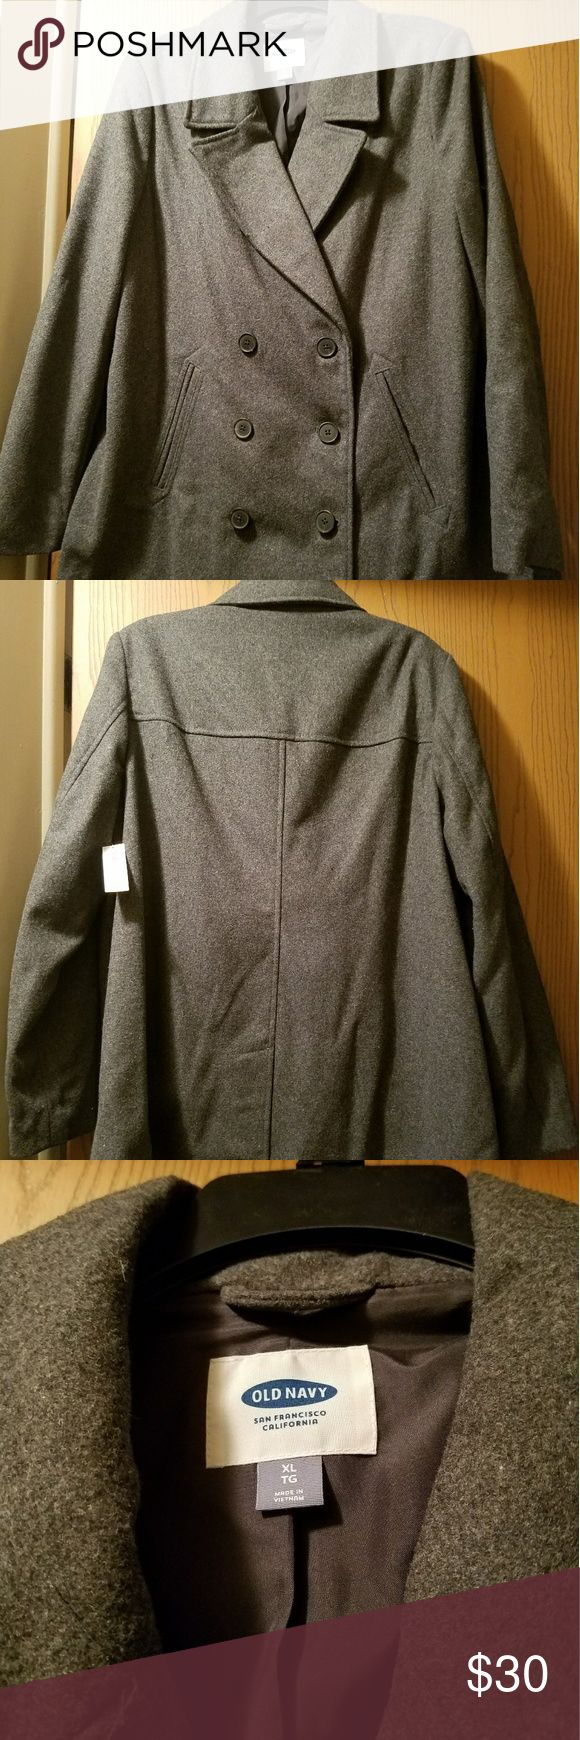 Old Navy Gray Wool Peacoat Old Navy Gray Wool Peacoat Old Navy Jackets & Coats Pea Coats